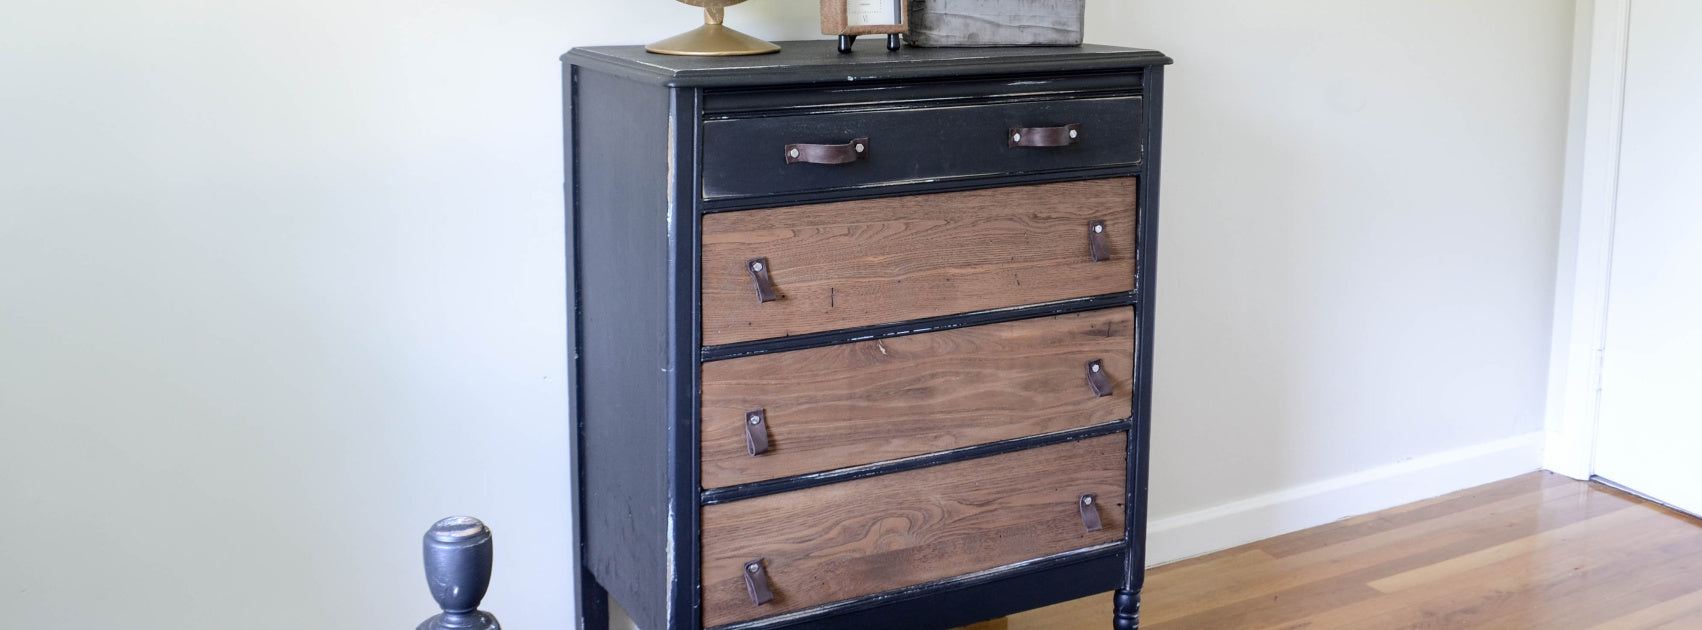 Two Toned Dresser DIY